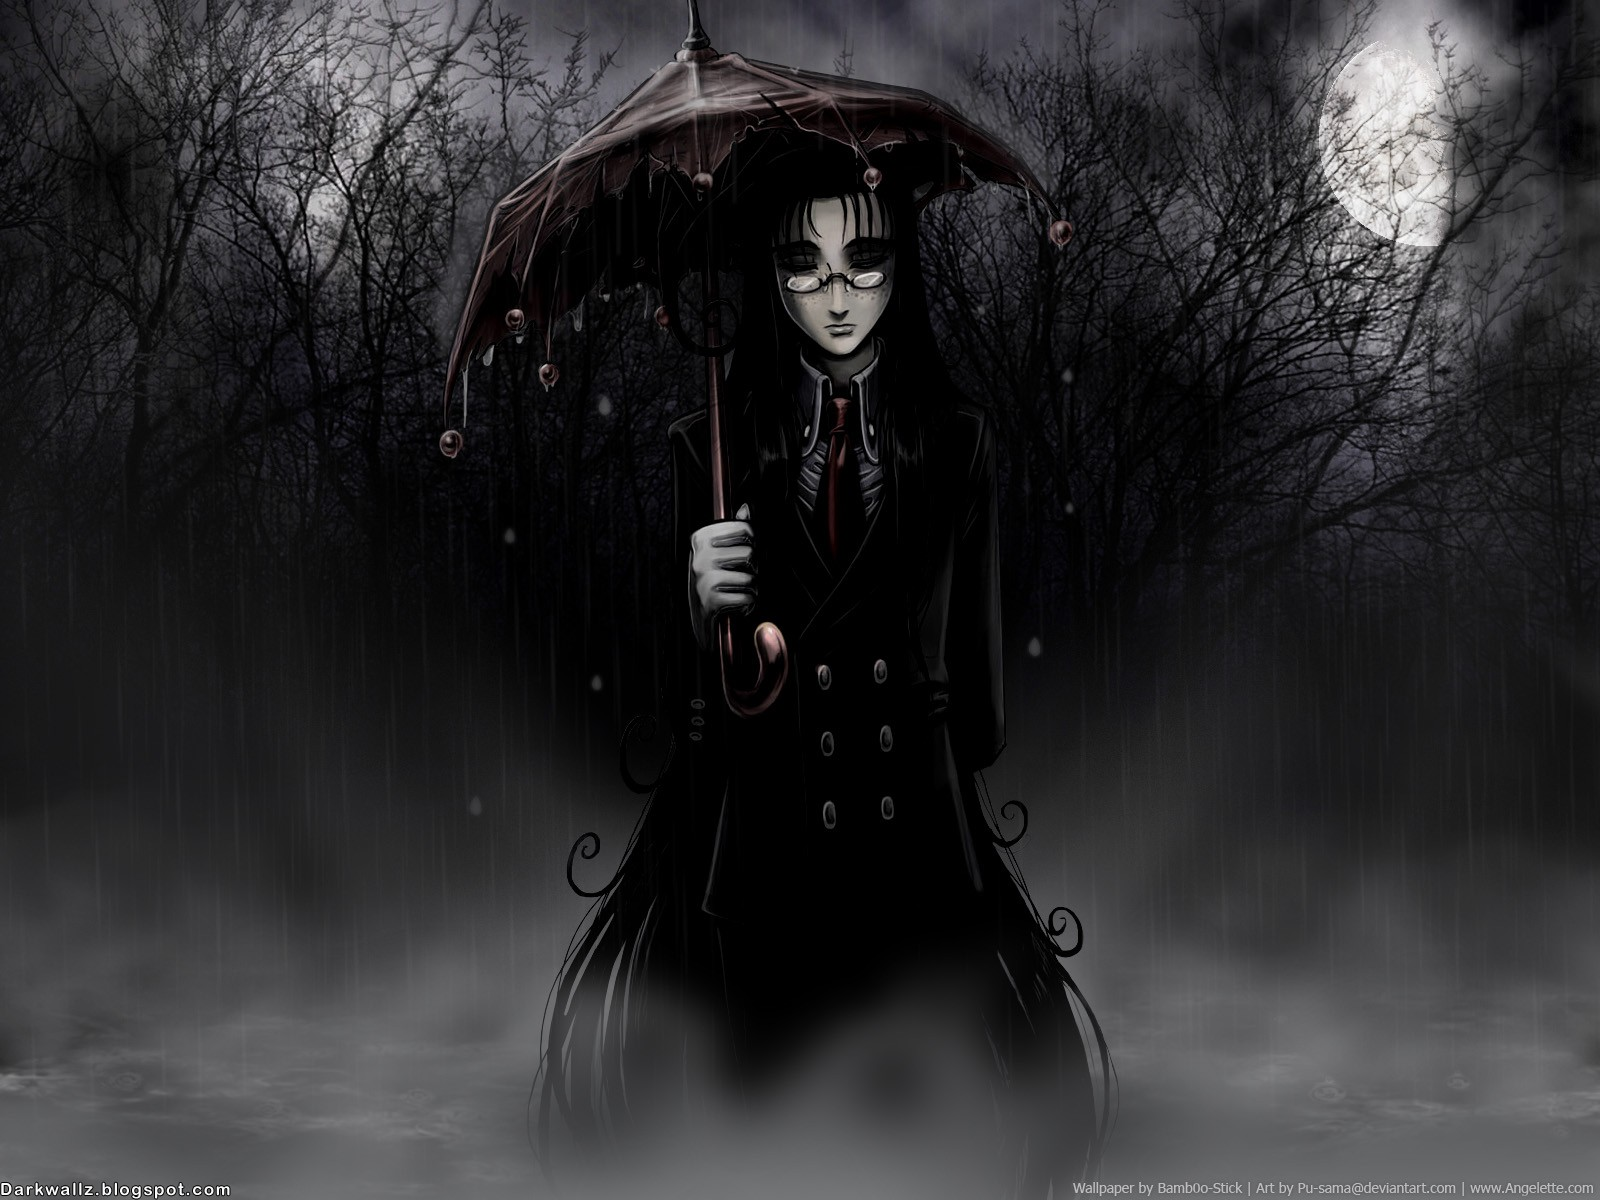 Dark Girls Wallpapers 06 Dark Wallpapers High Quality Black Gothic 1600x1200